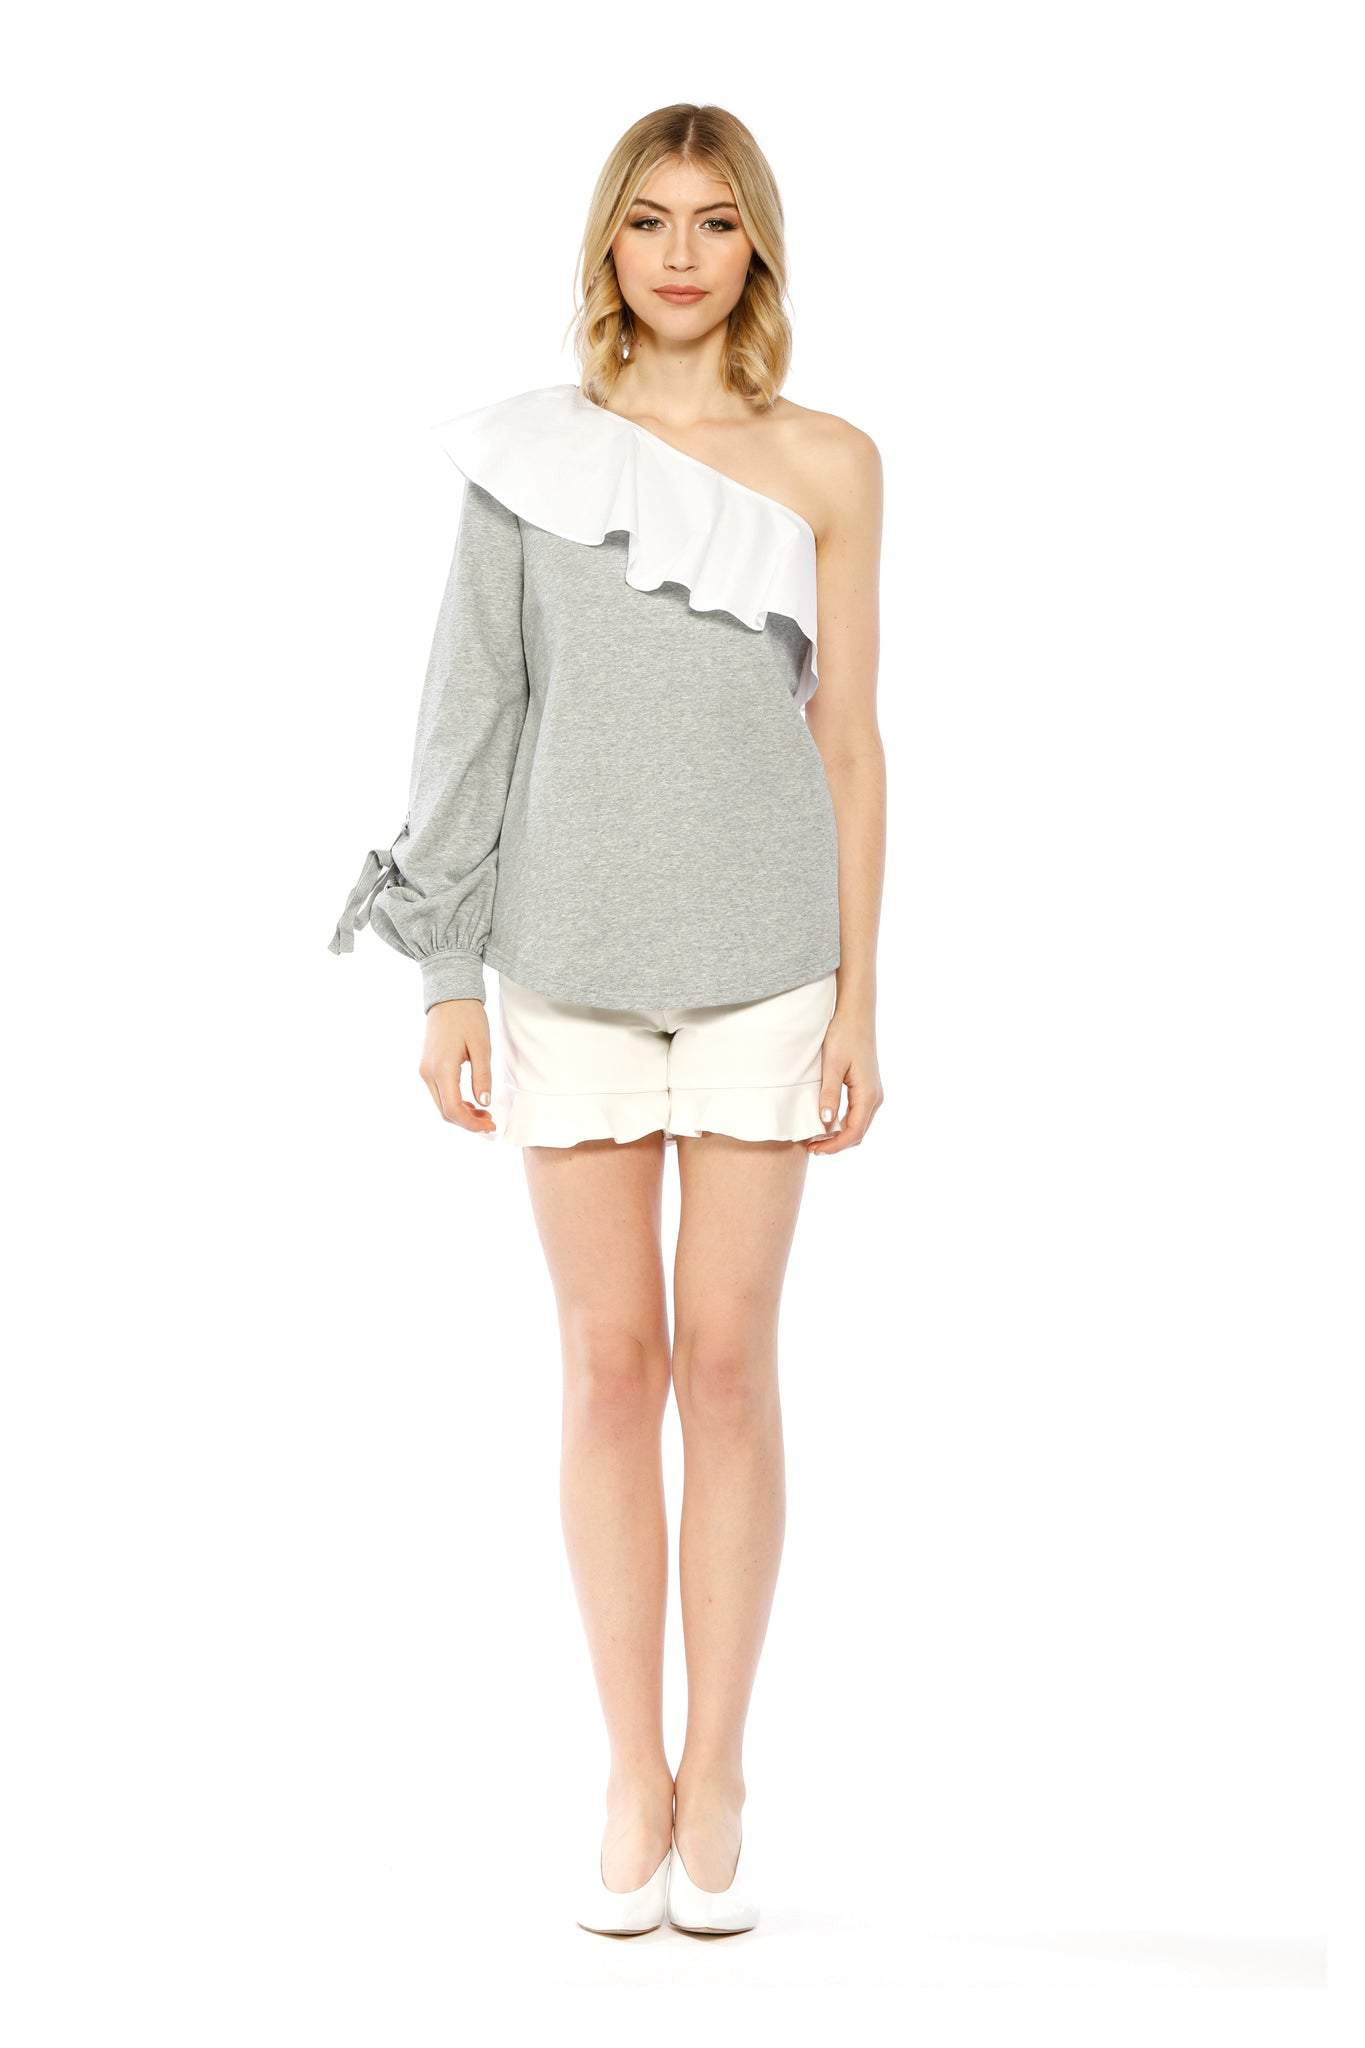 Front view of Marge Top, heather grey one-shouldered top with a large ruffled collar and a bishop sleeve adorned with a small tie. 87.6% Cotton and 12.4% Spandex - and Machine-washable.